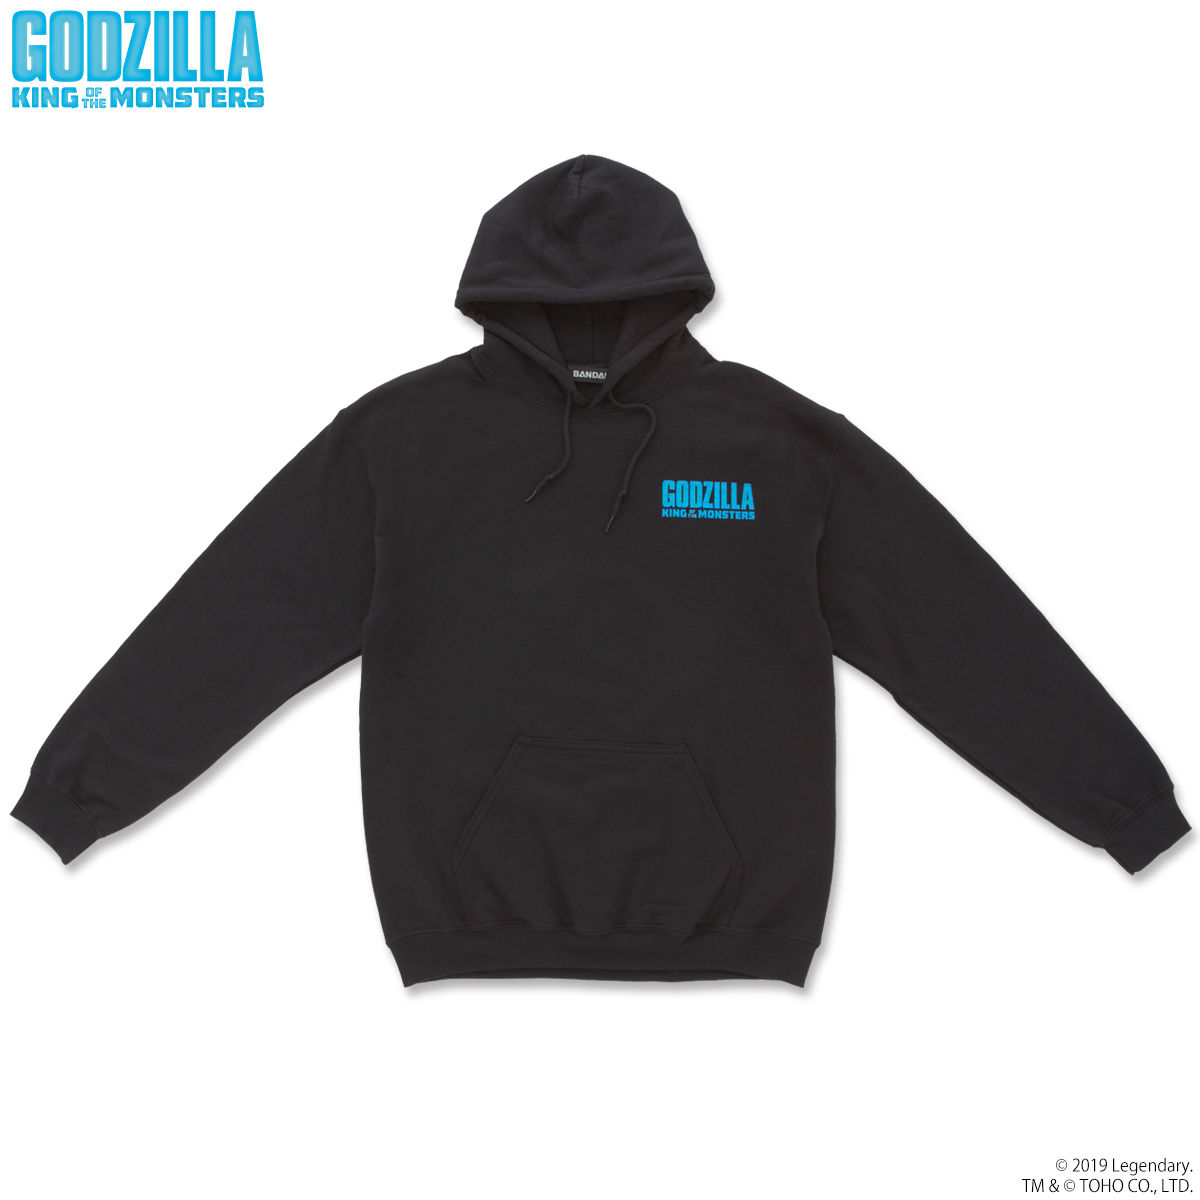 Godzilla: King of the Monsters - Godzilla Hoodie